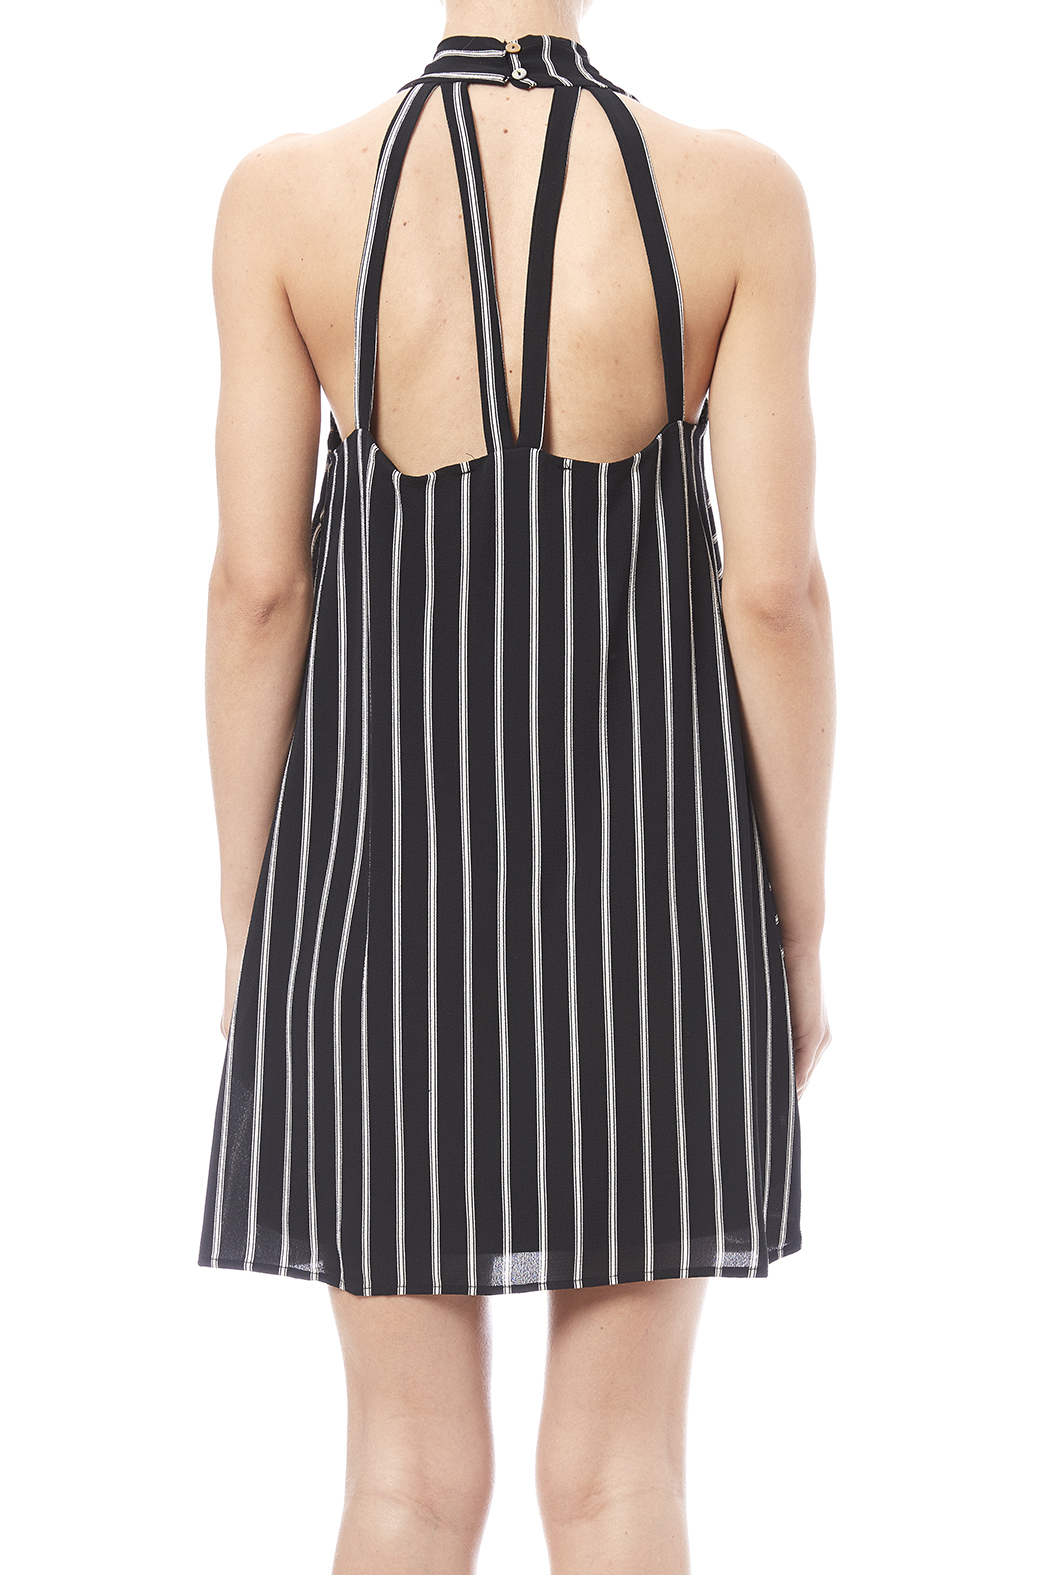 HYFVE Black And White Dress - Back Cropped Image